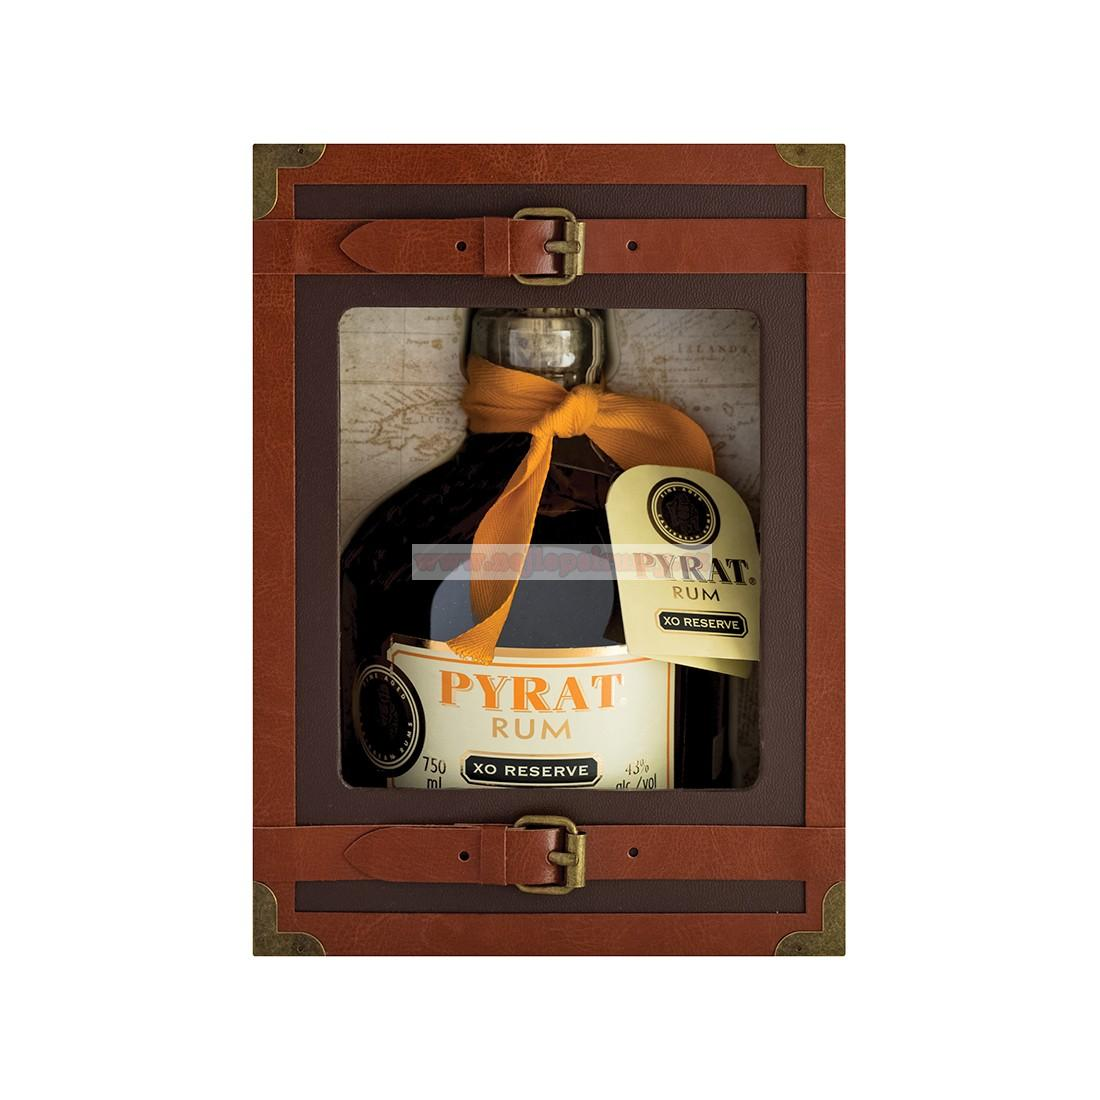 Pyrat XO Reserve 0.7L 40% limited edition suitcase